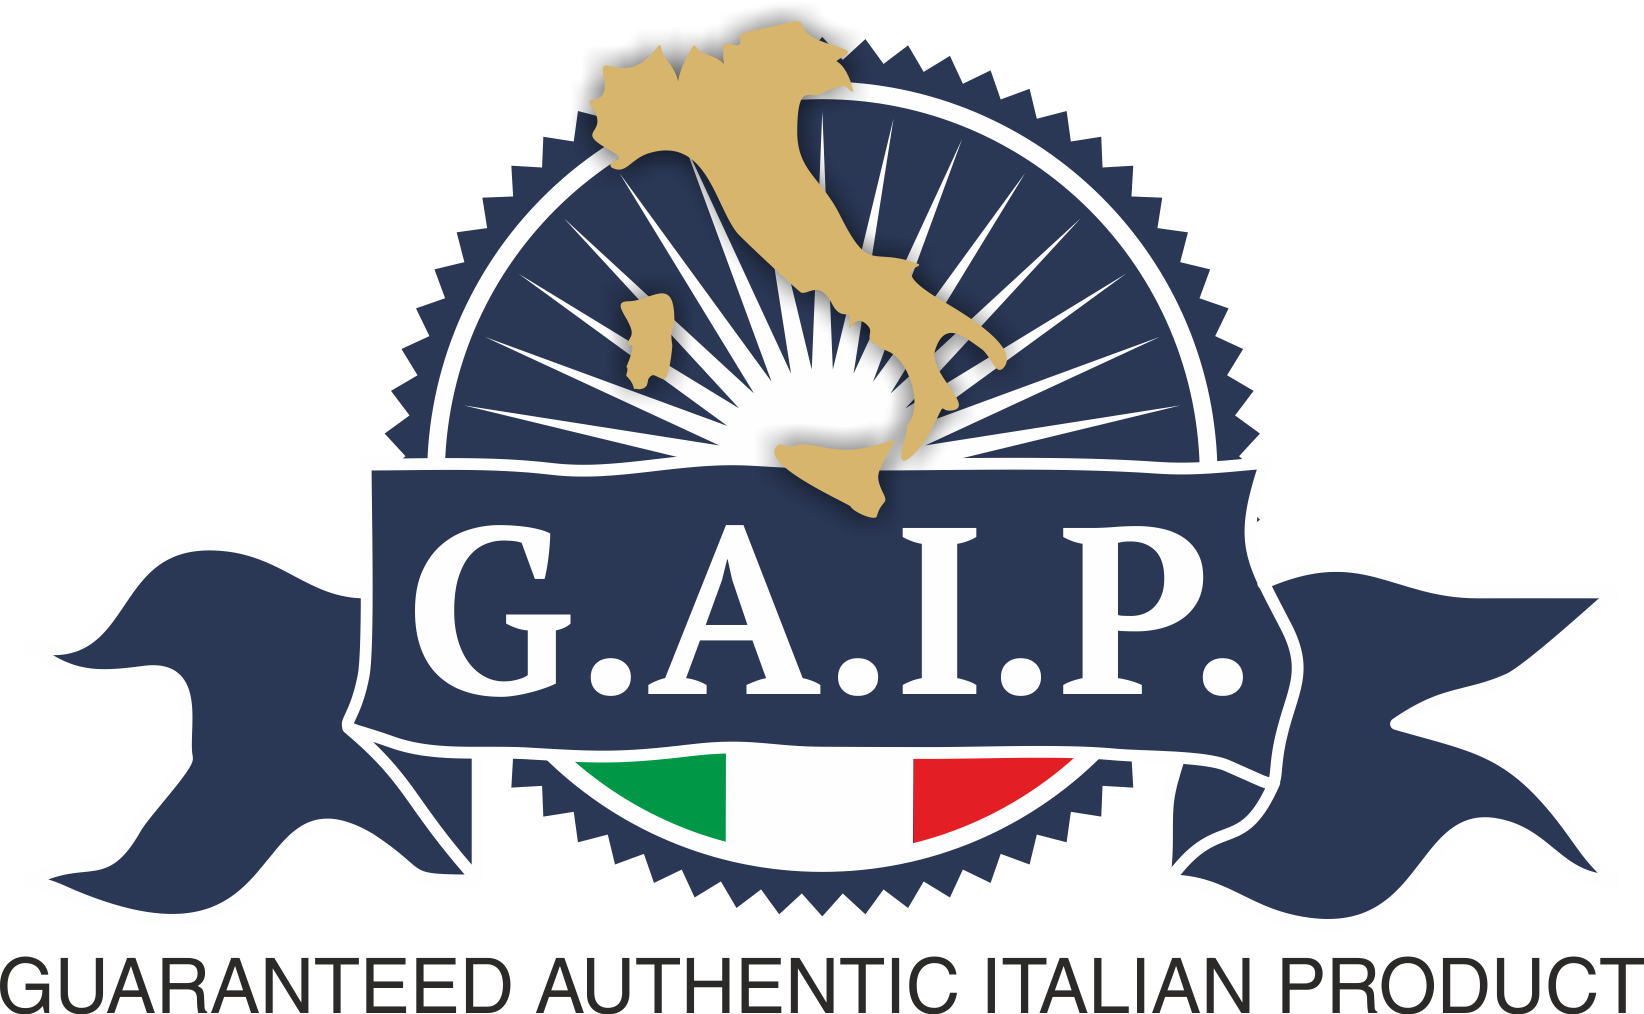 MADITALY GAIP Products made in Italy